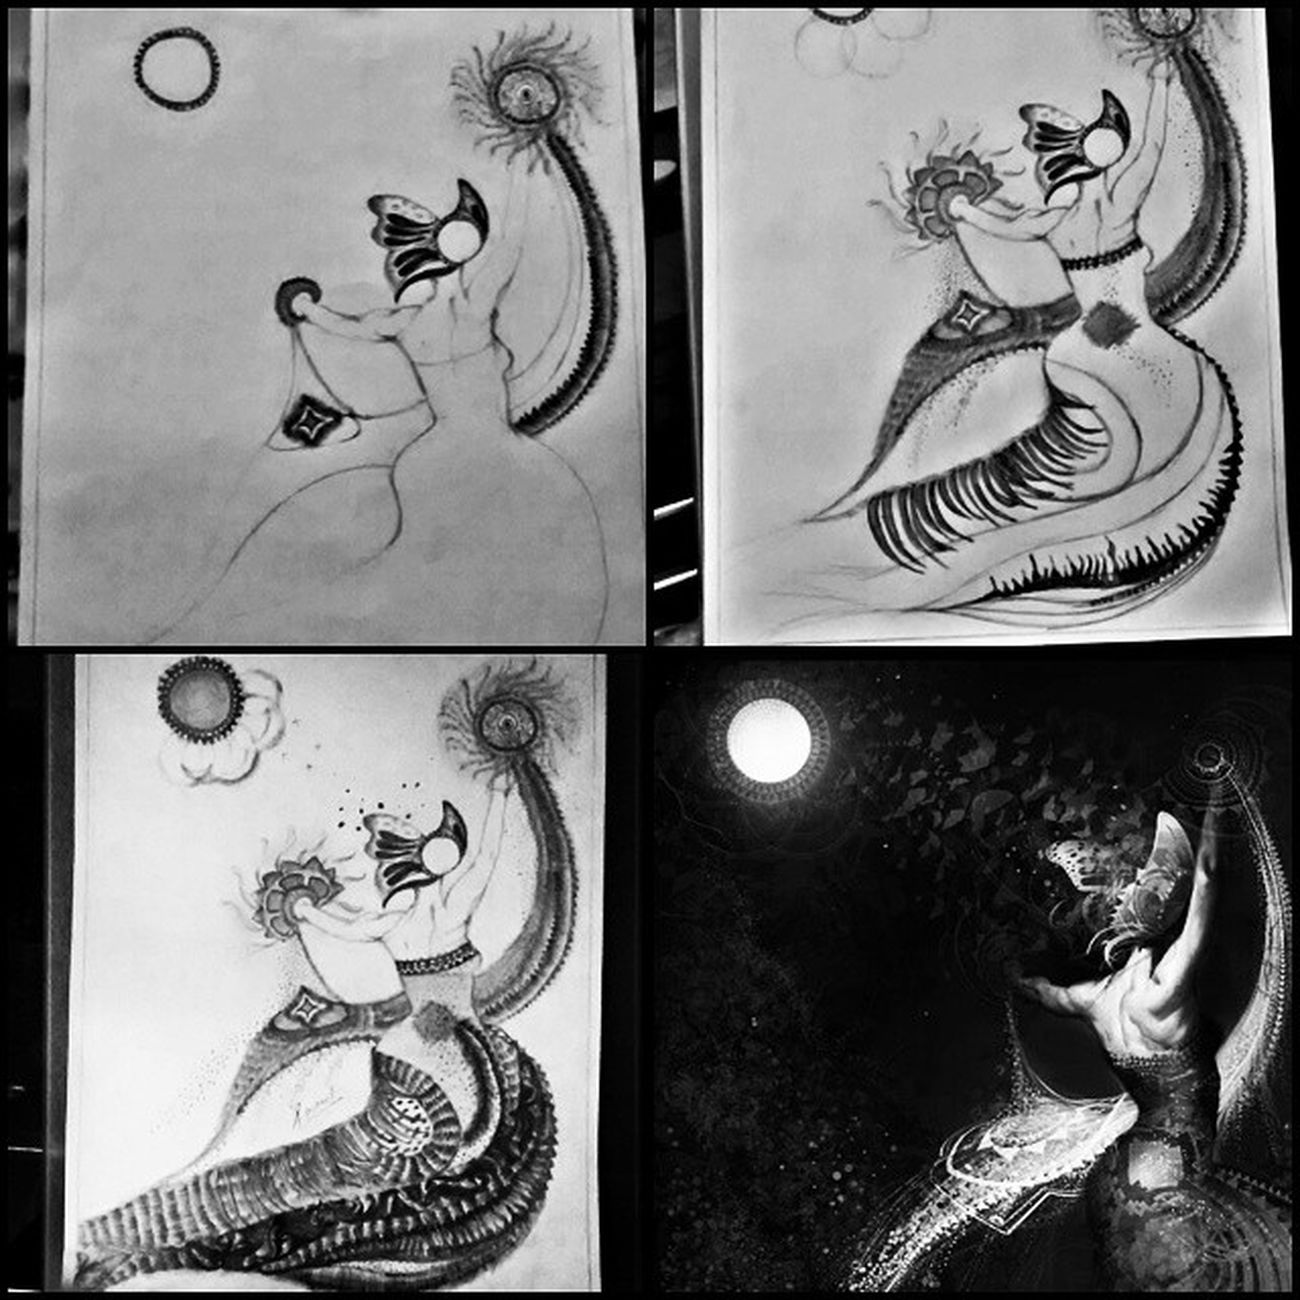 WorkingOnMarmaid Finally Didit LoveSketch art nature blackwhite pencilshade variations thick soft naturesbeauty highlights midtones lowtones justperfect feelings beingcreative stars sparkle simplyawsm instapic instaclick ?